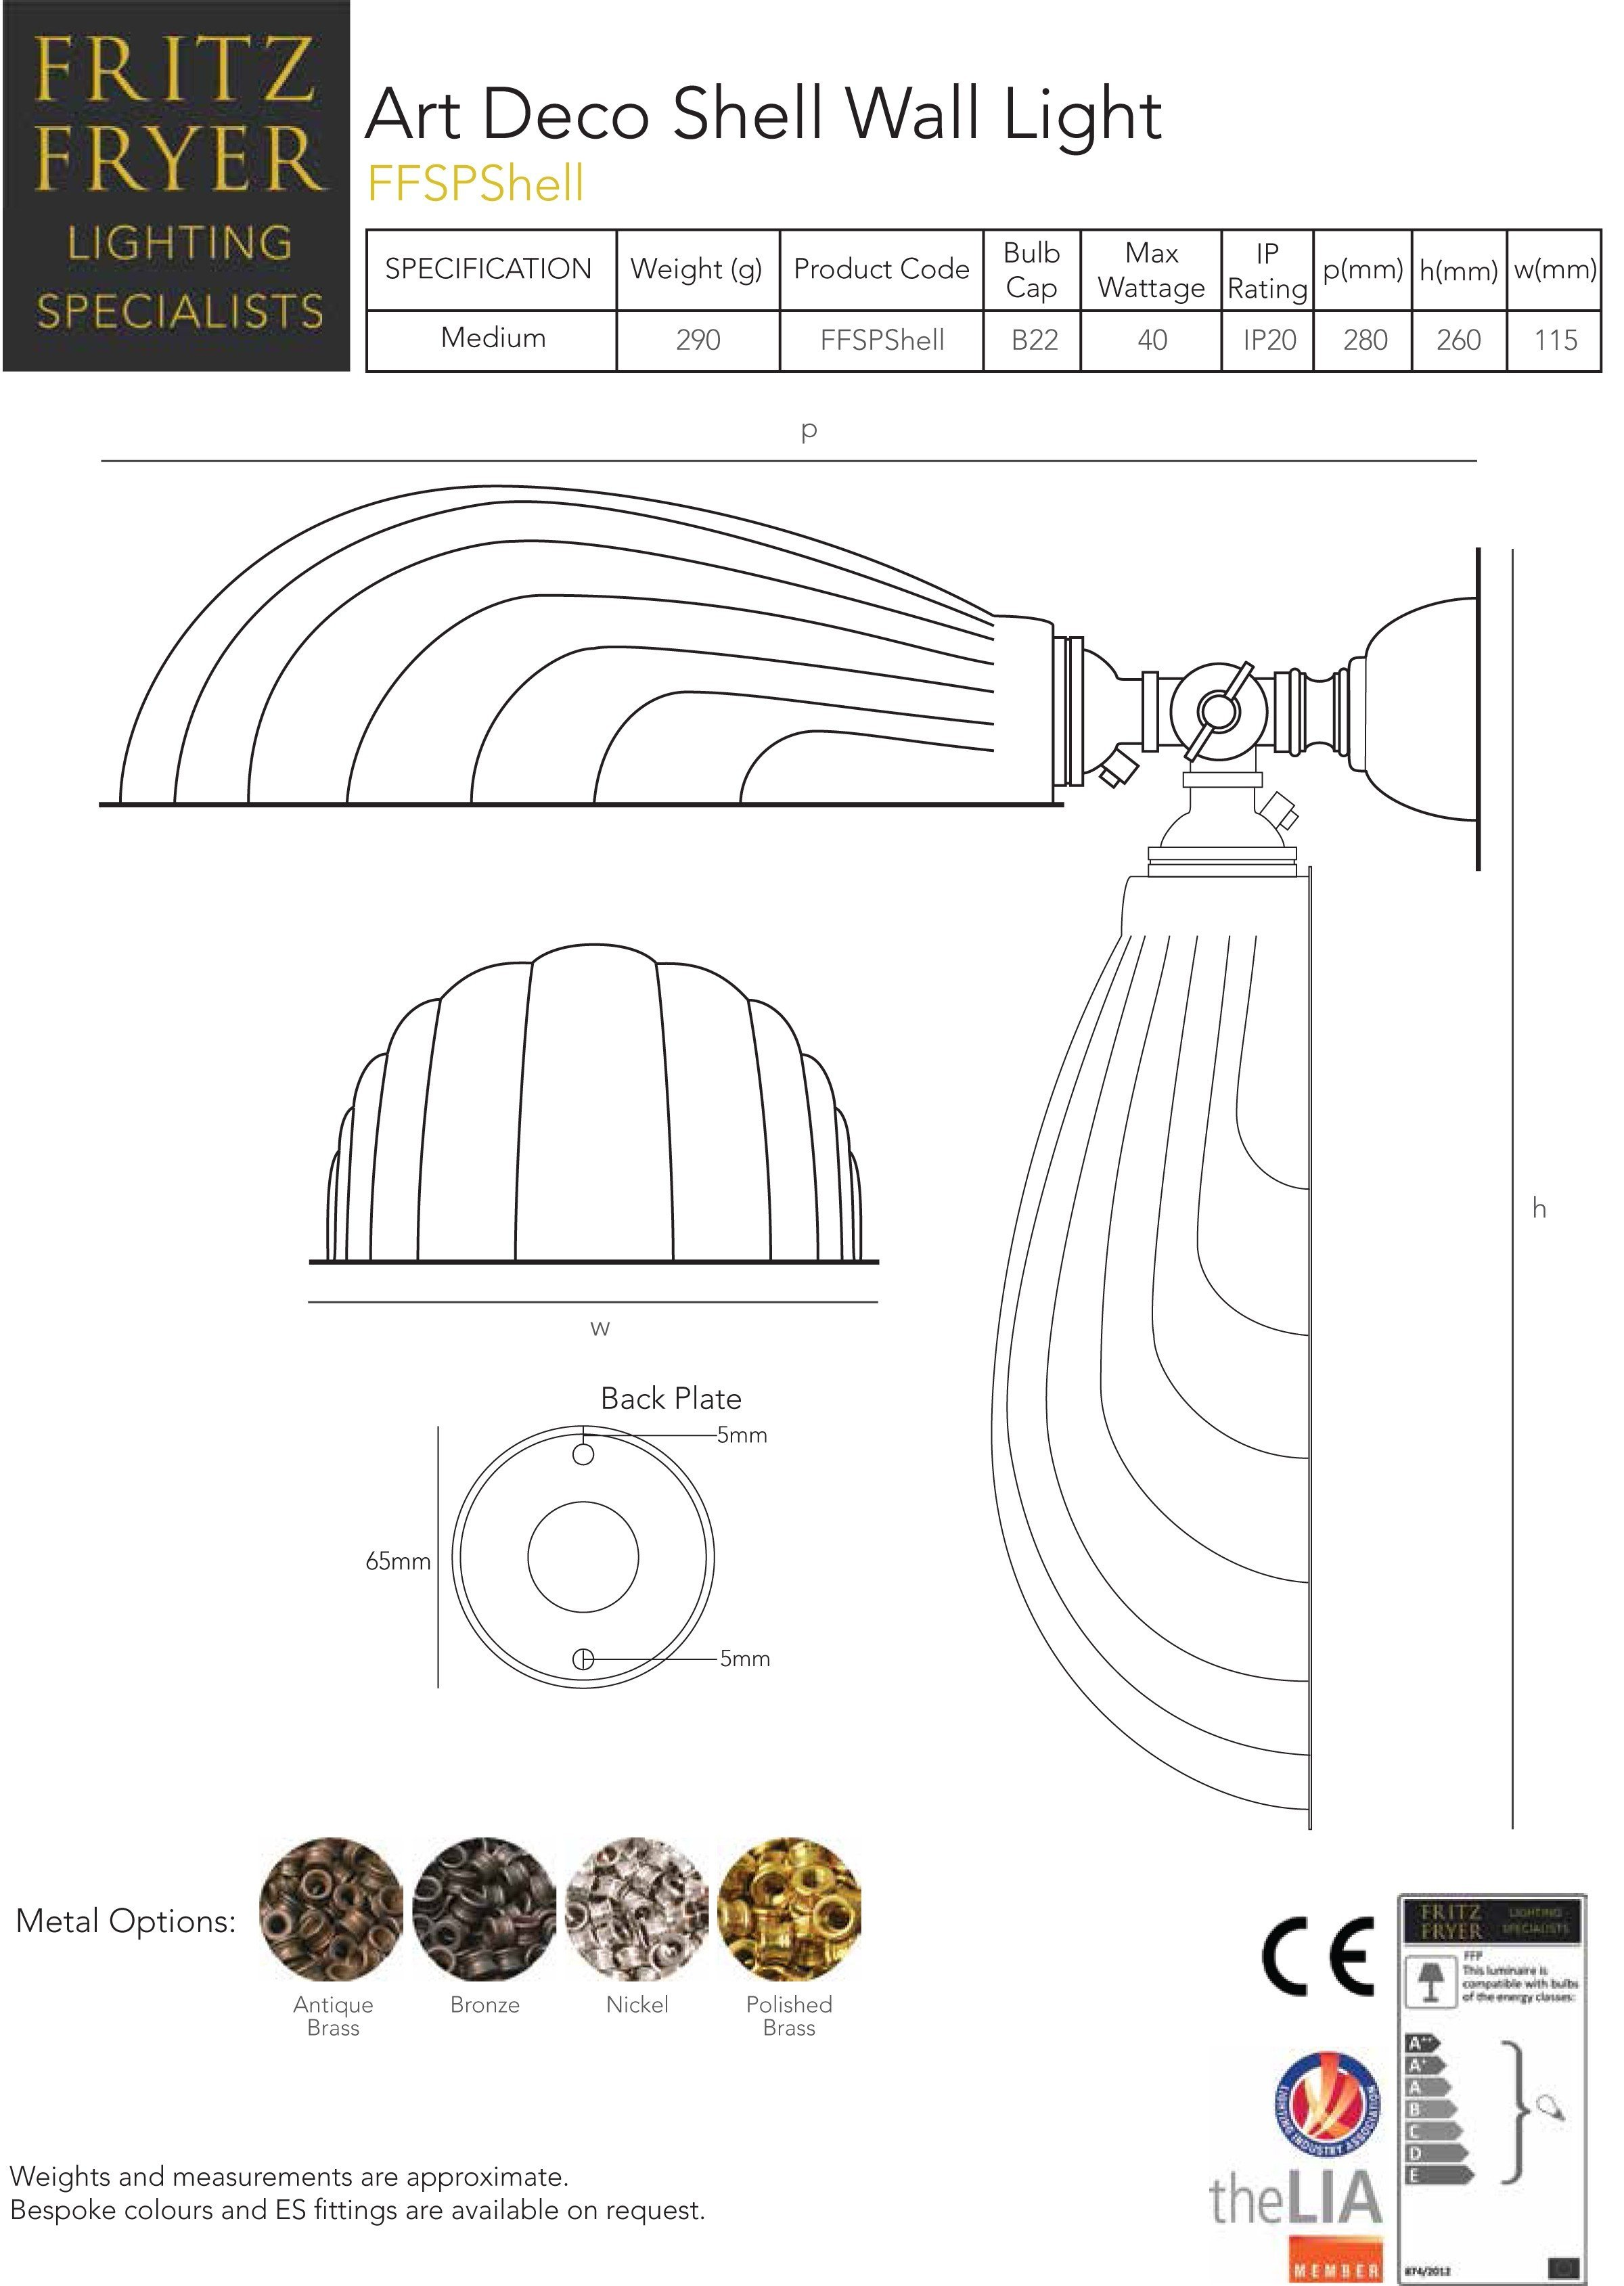 designer-lighting-art-deco-shell-wall-light-technical-data-sheet-fritz-fryer